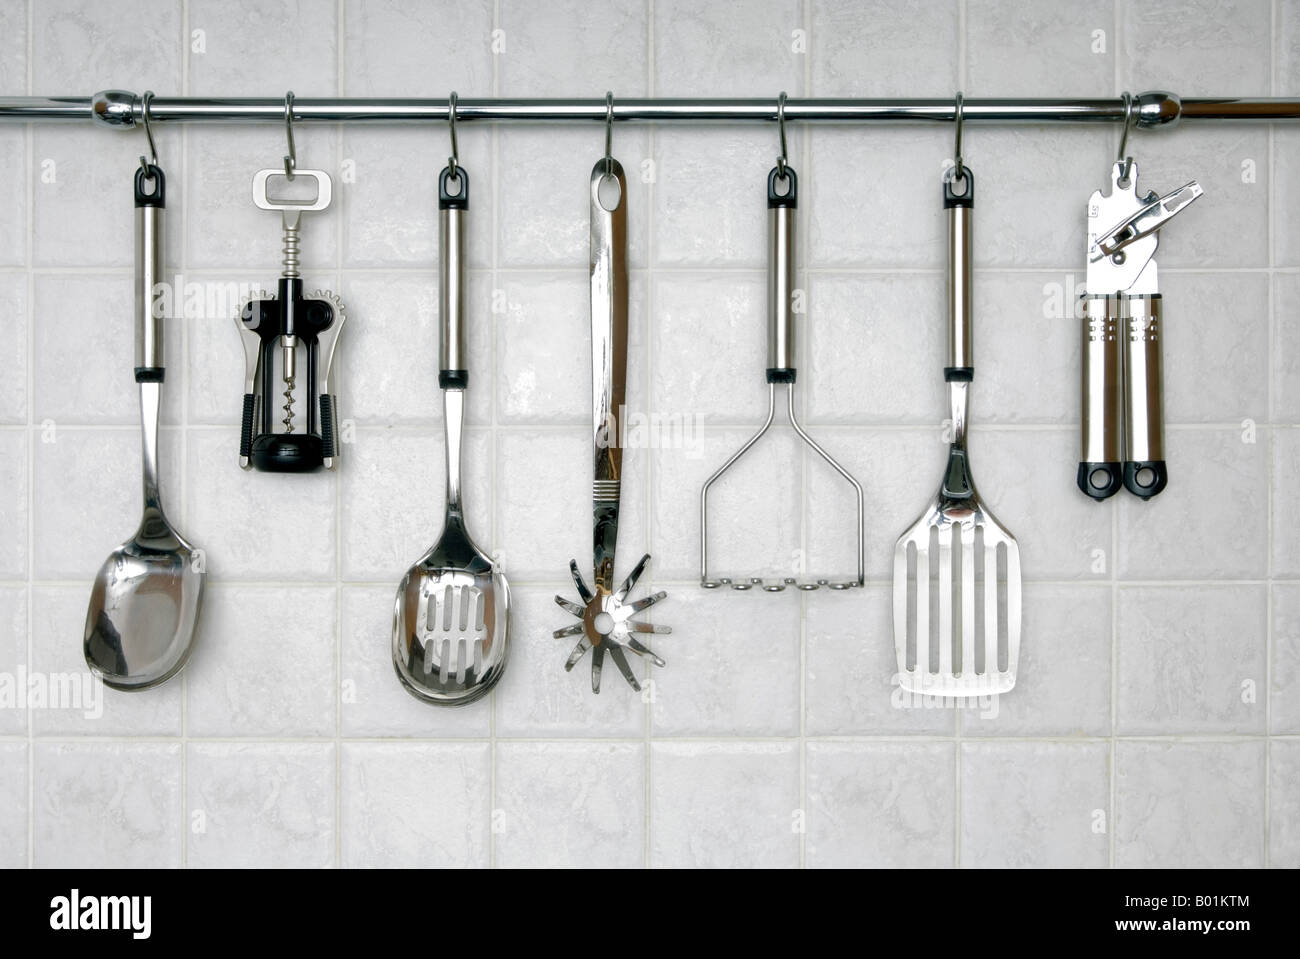 Stainless steel kitchen utensils hanging on a rack, against white ...